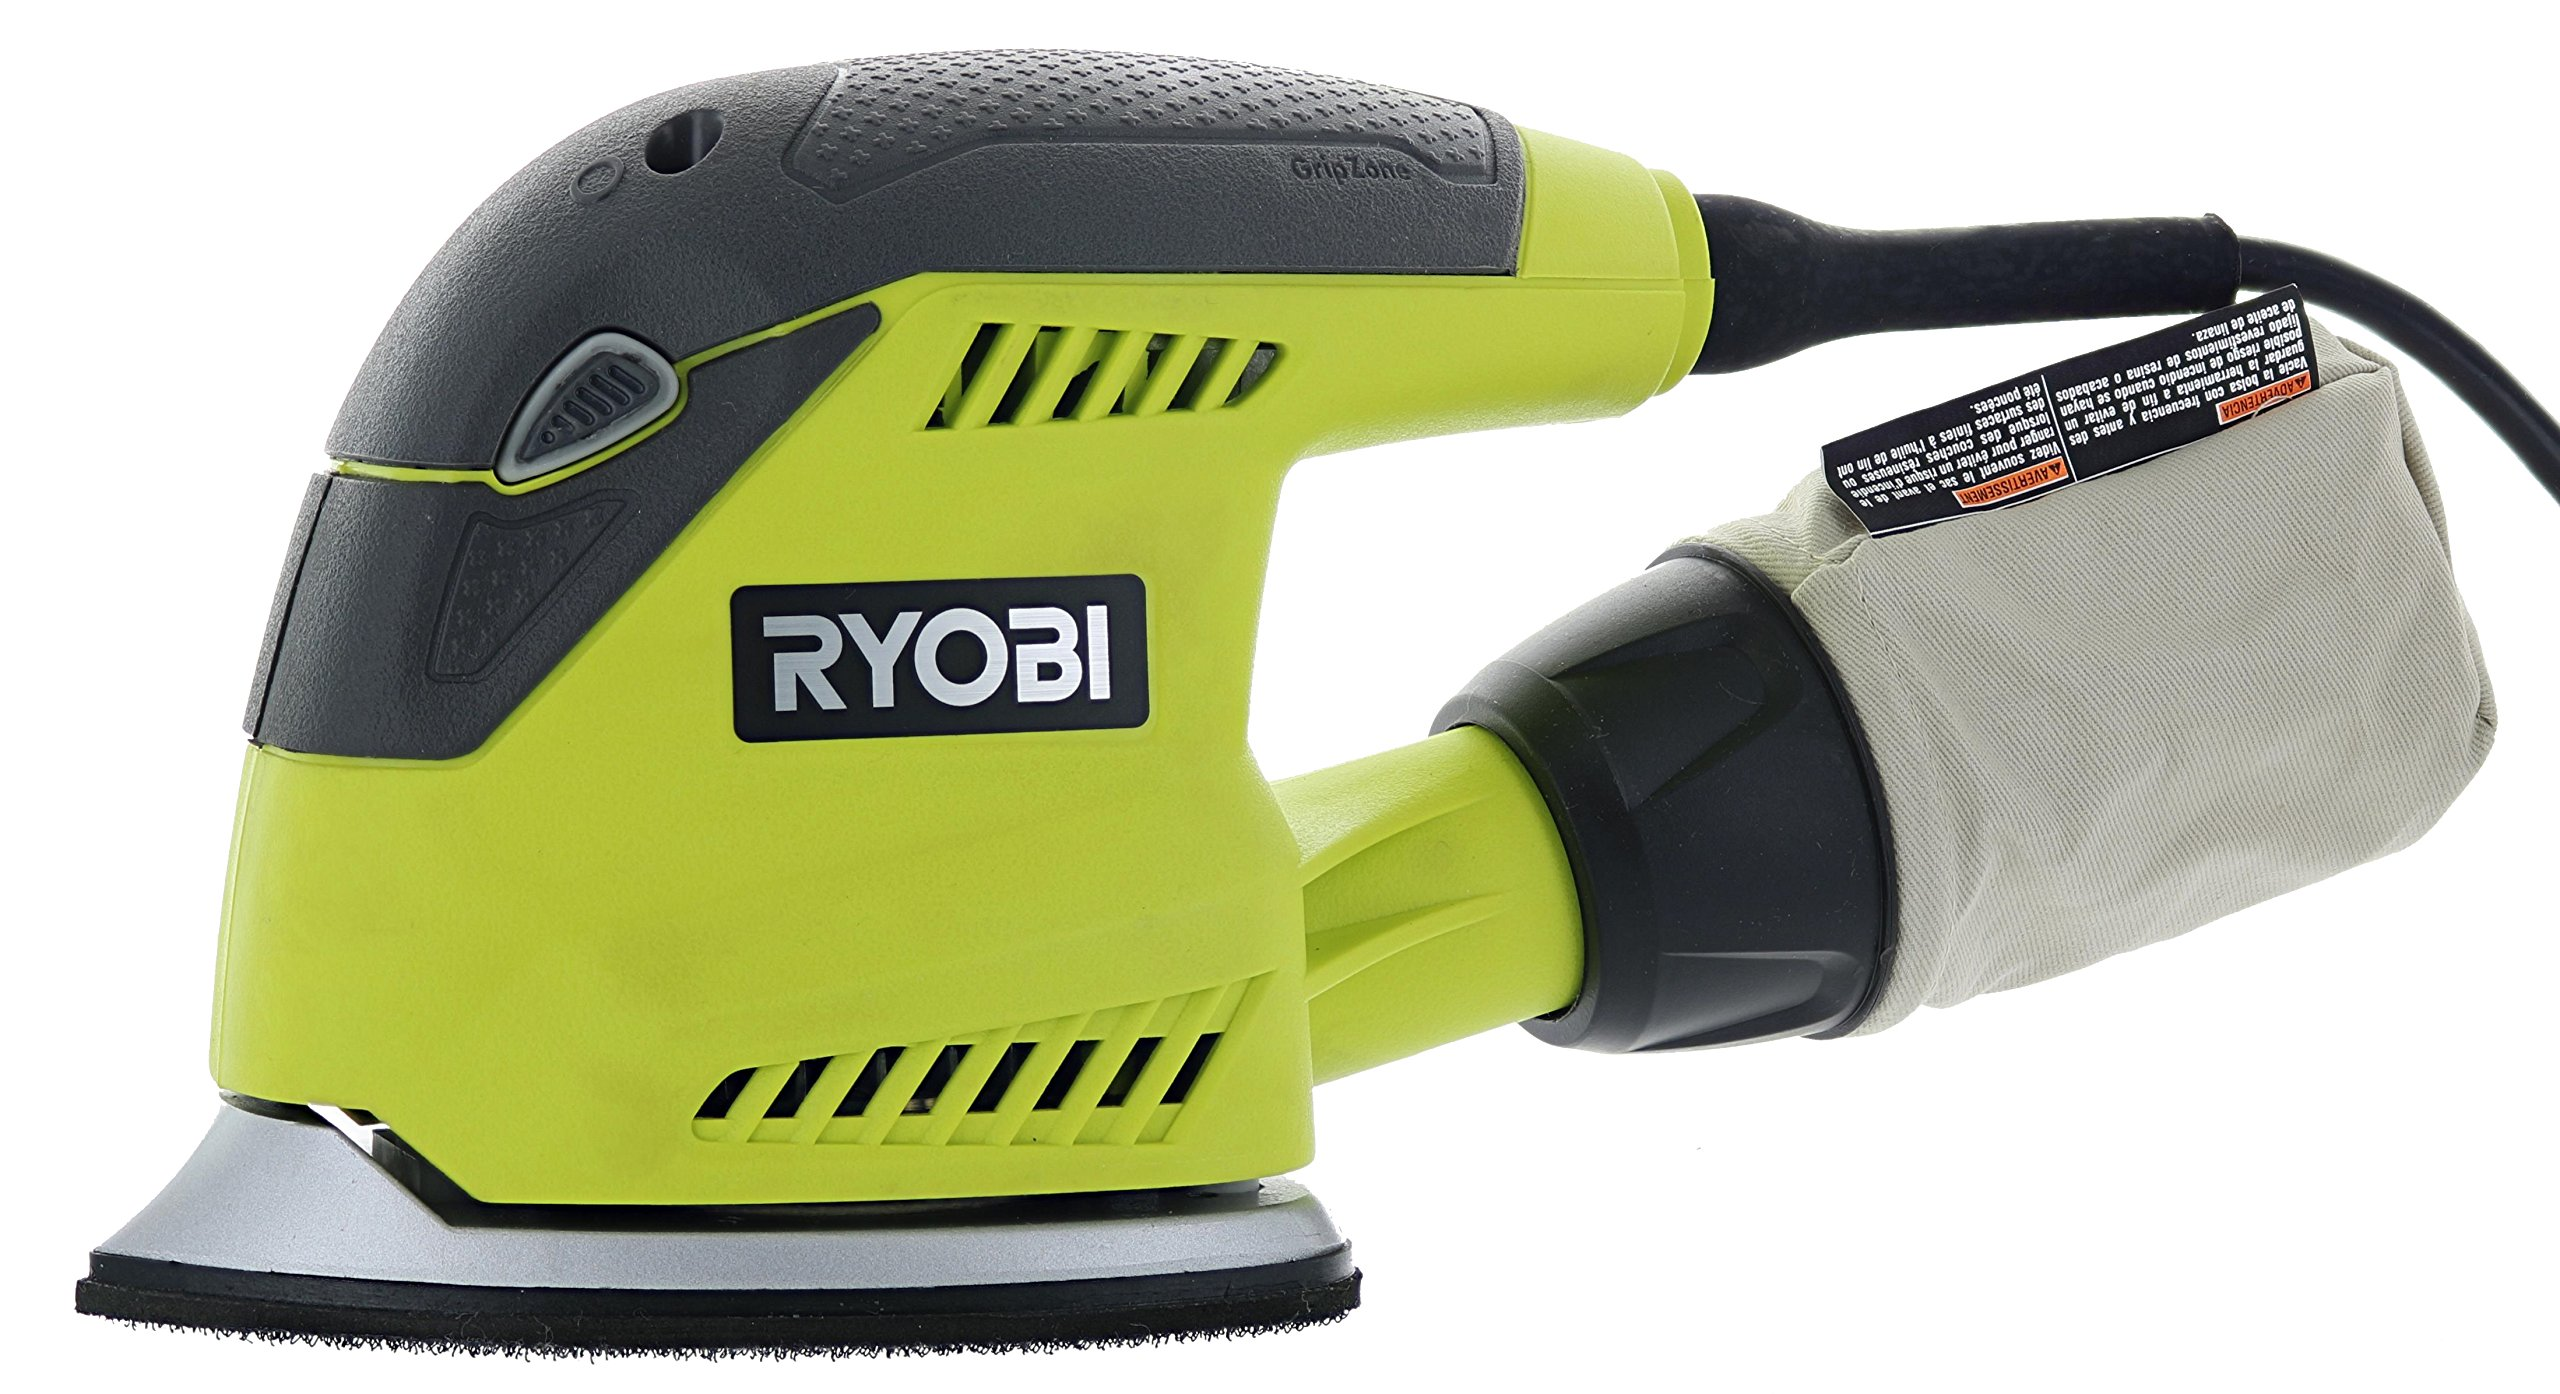 Ryobi CFS1503GK Compact Corner Cat 12,500 OPM 1.2 Amp Corded Orbital Finishing Sander w/ 10 Pads and Carrying Case